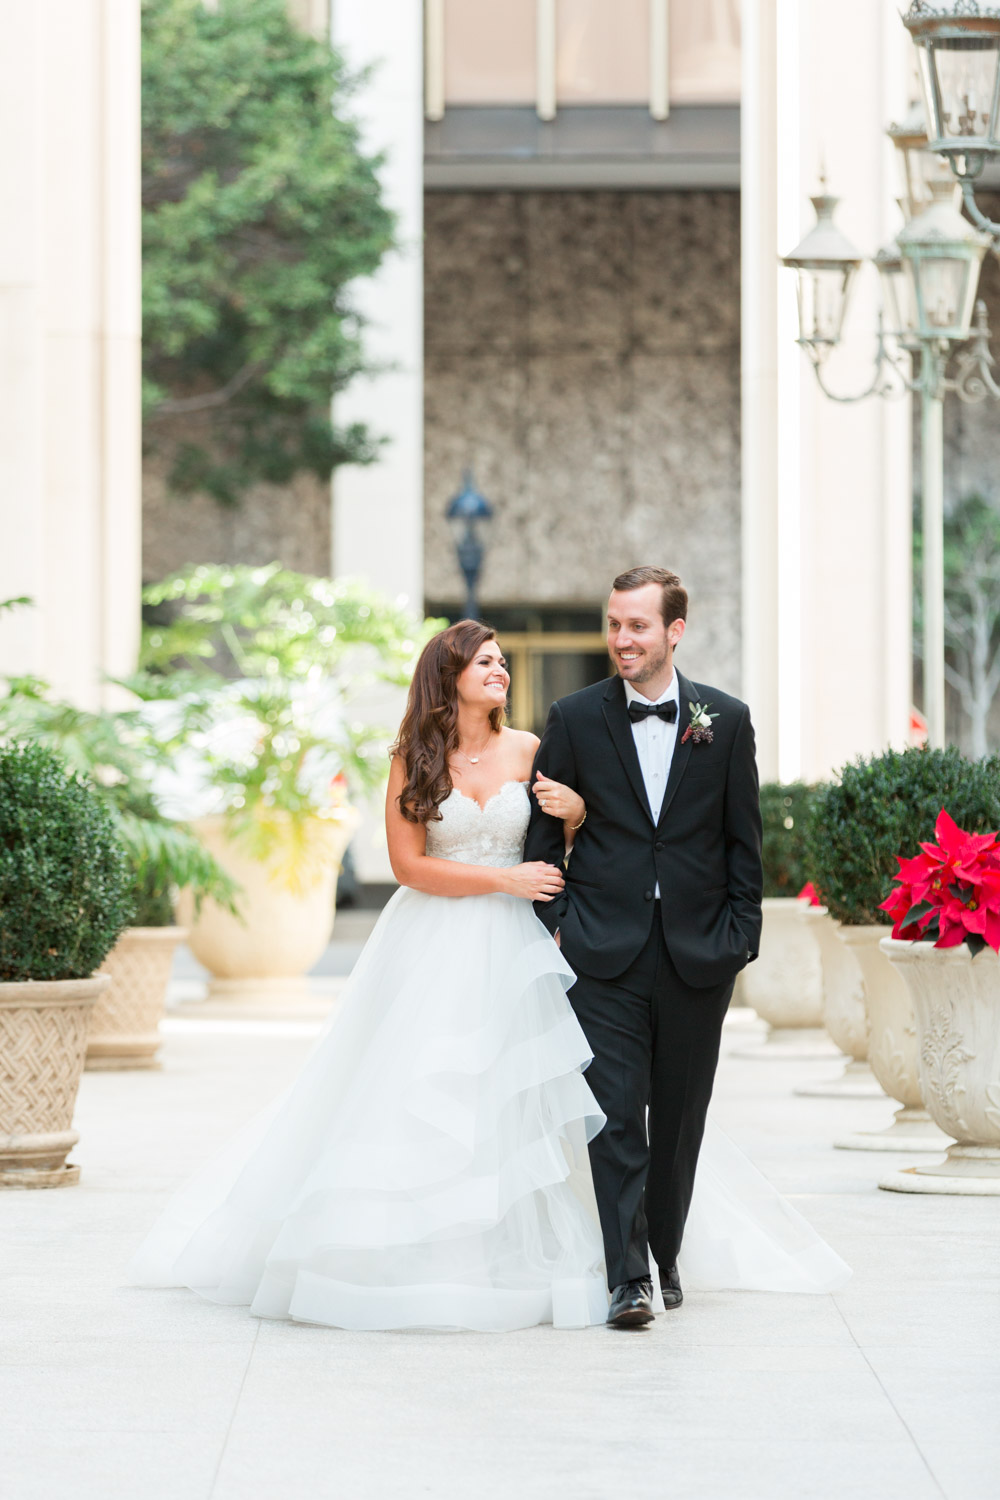 Chic luxury bride and groom walking downtown in San Diego, Cavin Elizabeth Photography